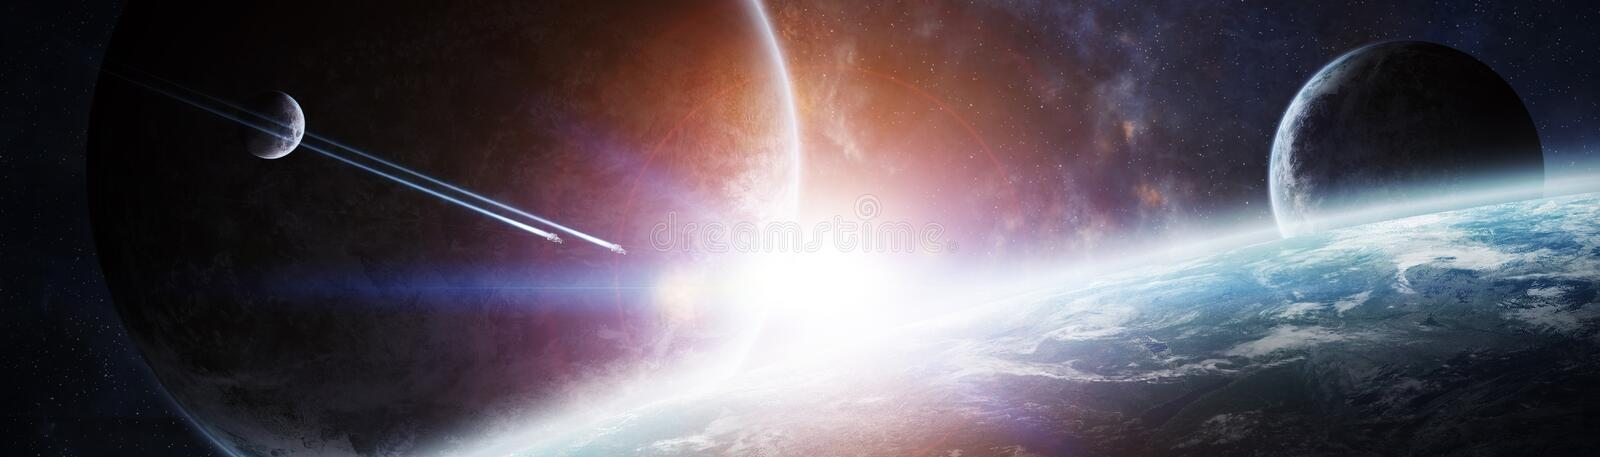 Panoramic view of planets in distant solar system 3D rendering e stock illustration